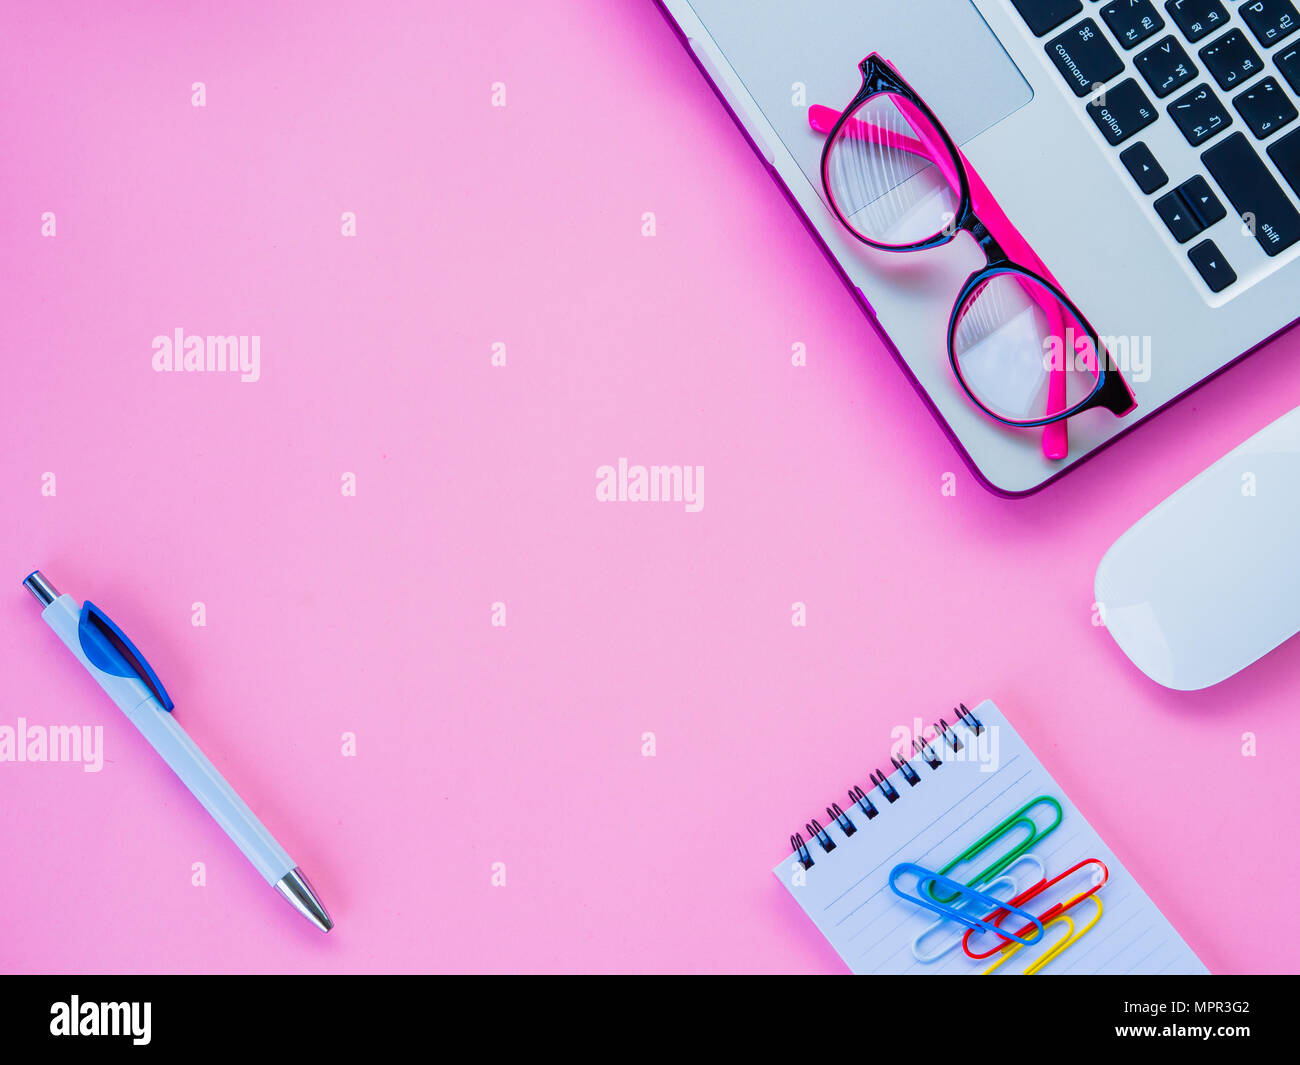 Feminine Desk Workspace With Office Accessories Including Laptop, Note  Book, Mouse, Clips And Pink Glasses On Pink Background.